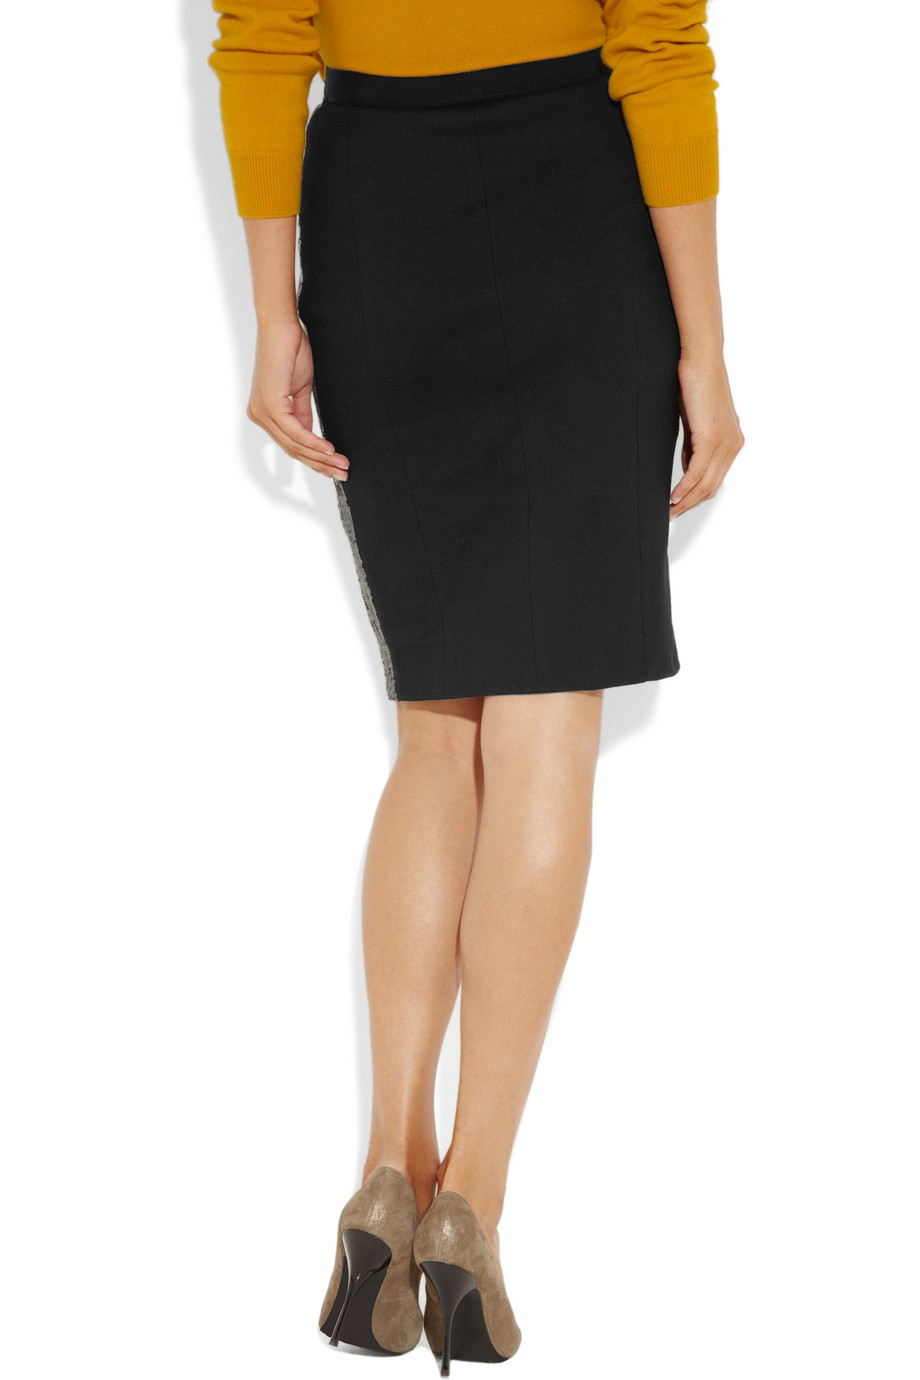 Boutique moschino Sequin Pencil Skirt in Black